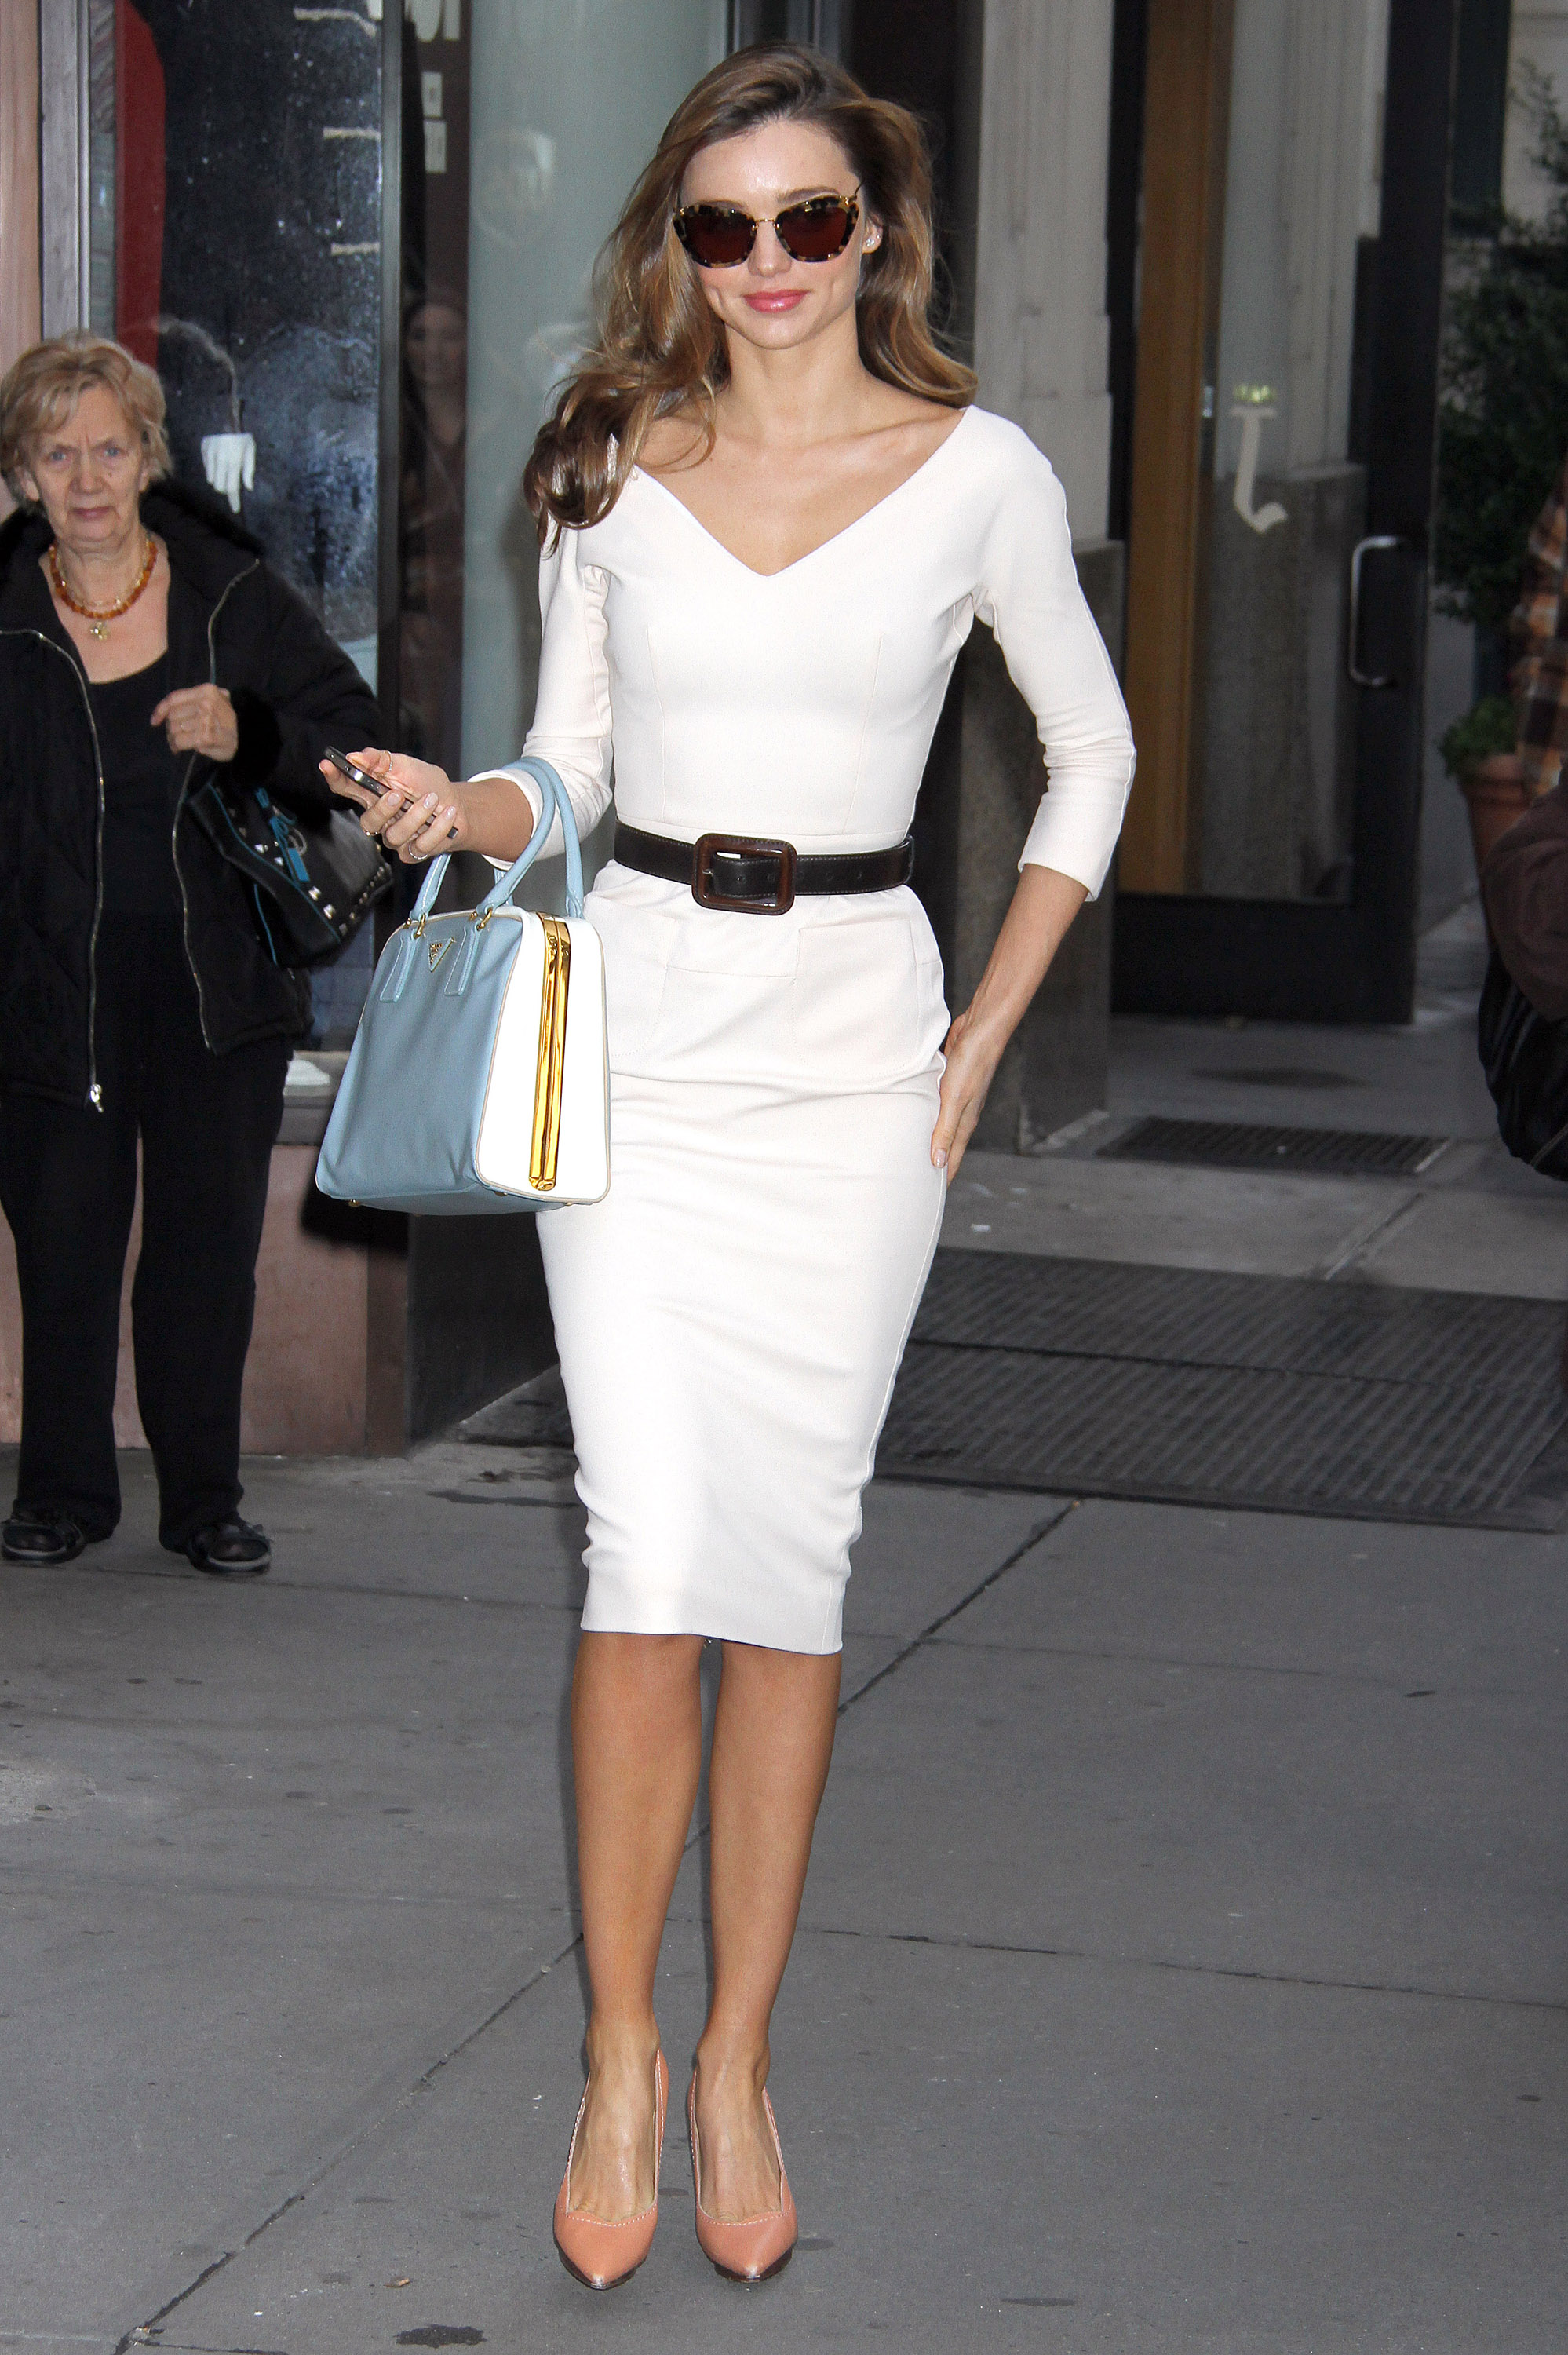 winter whites i want her outfit